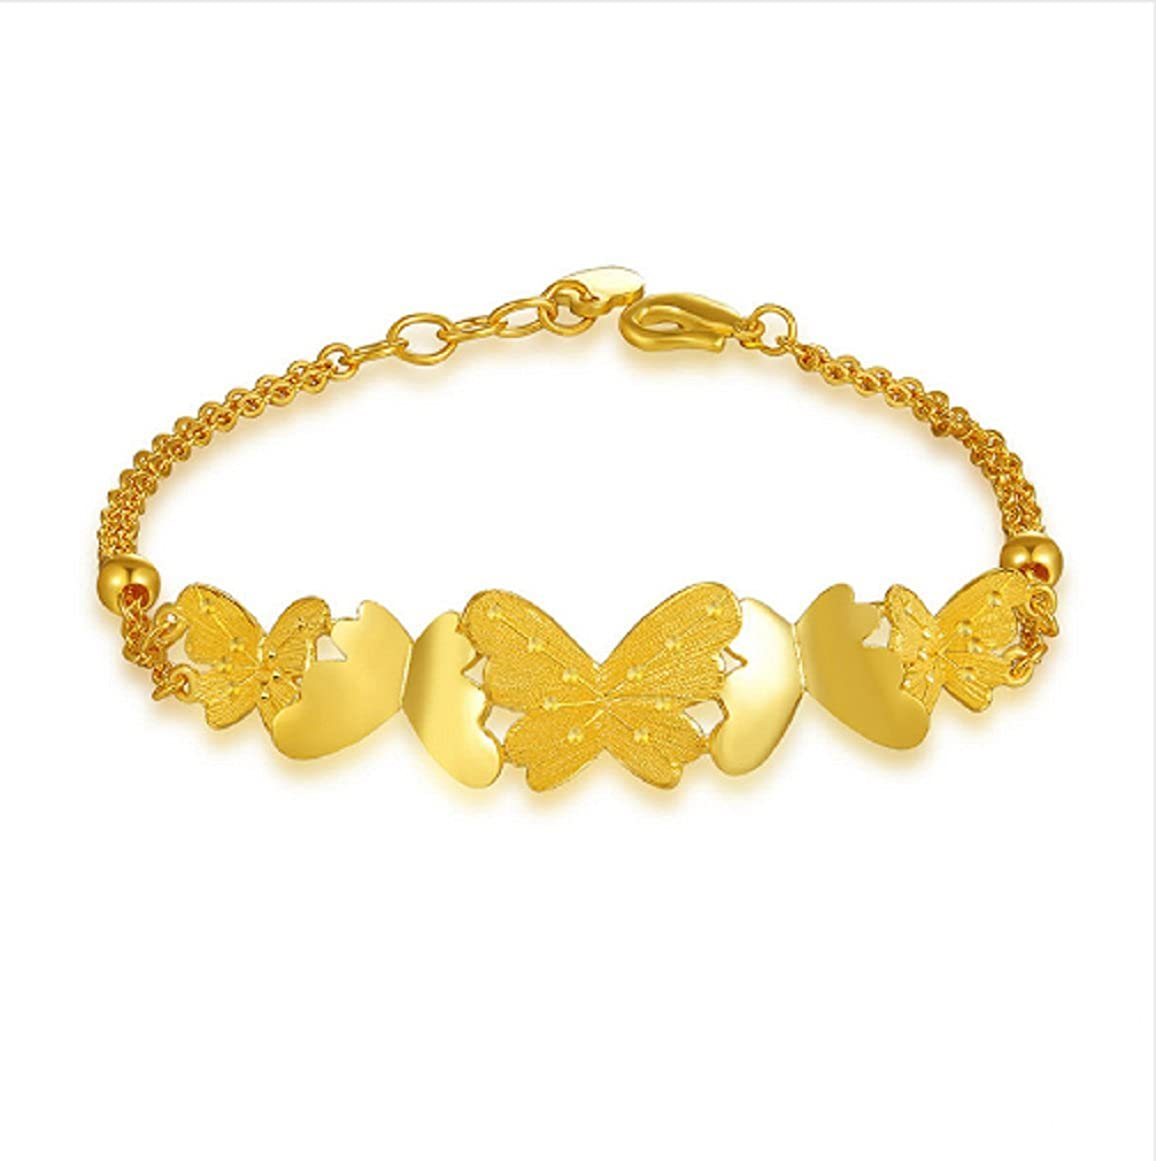 3f9458a6255 Buy GOWE 24k Pure Gold Butterfly Bracelet Woman Solid 999 Real ...